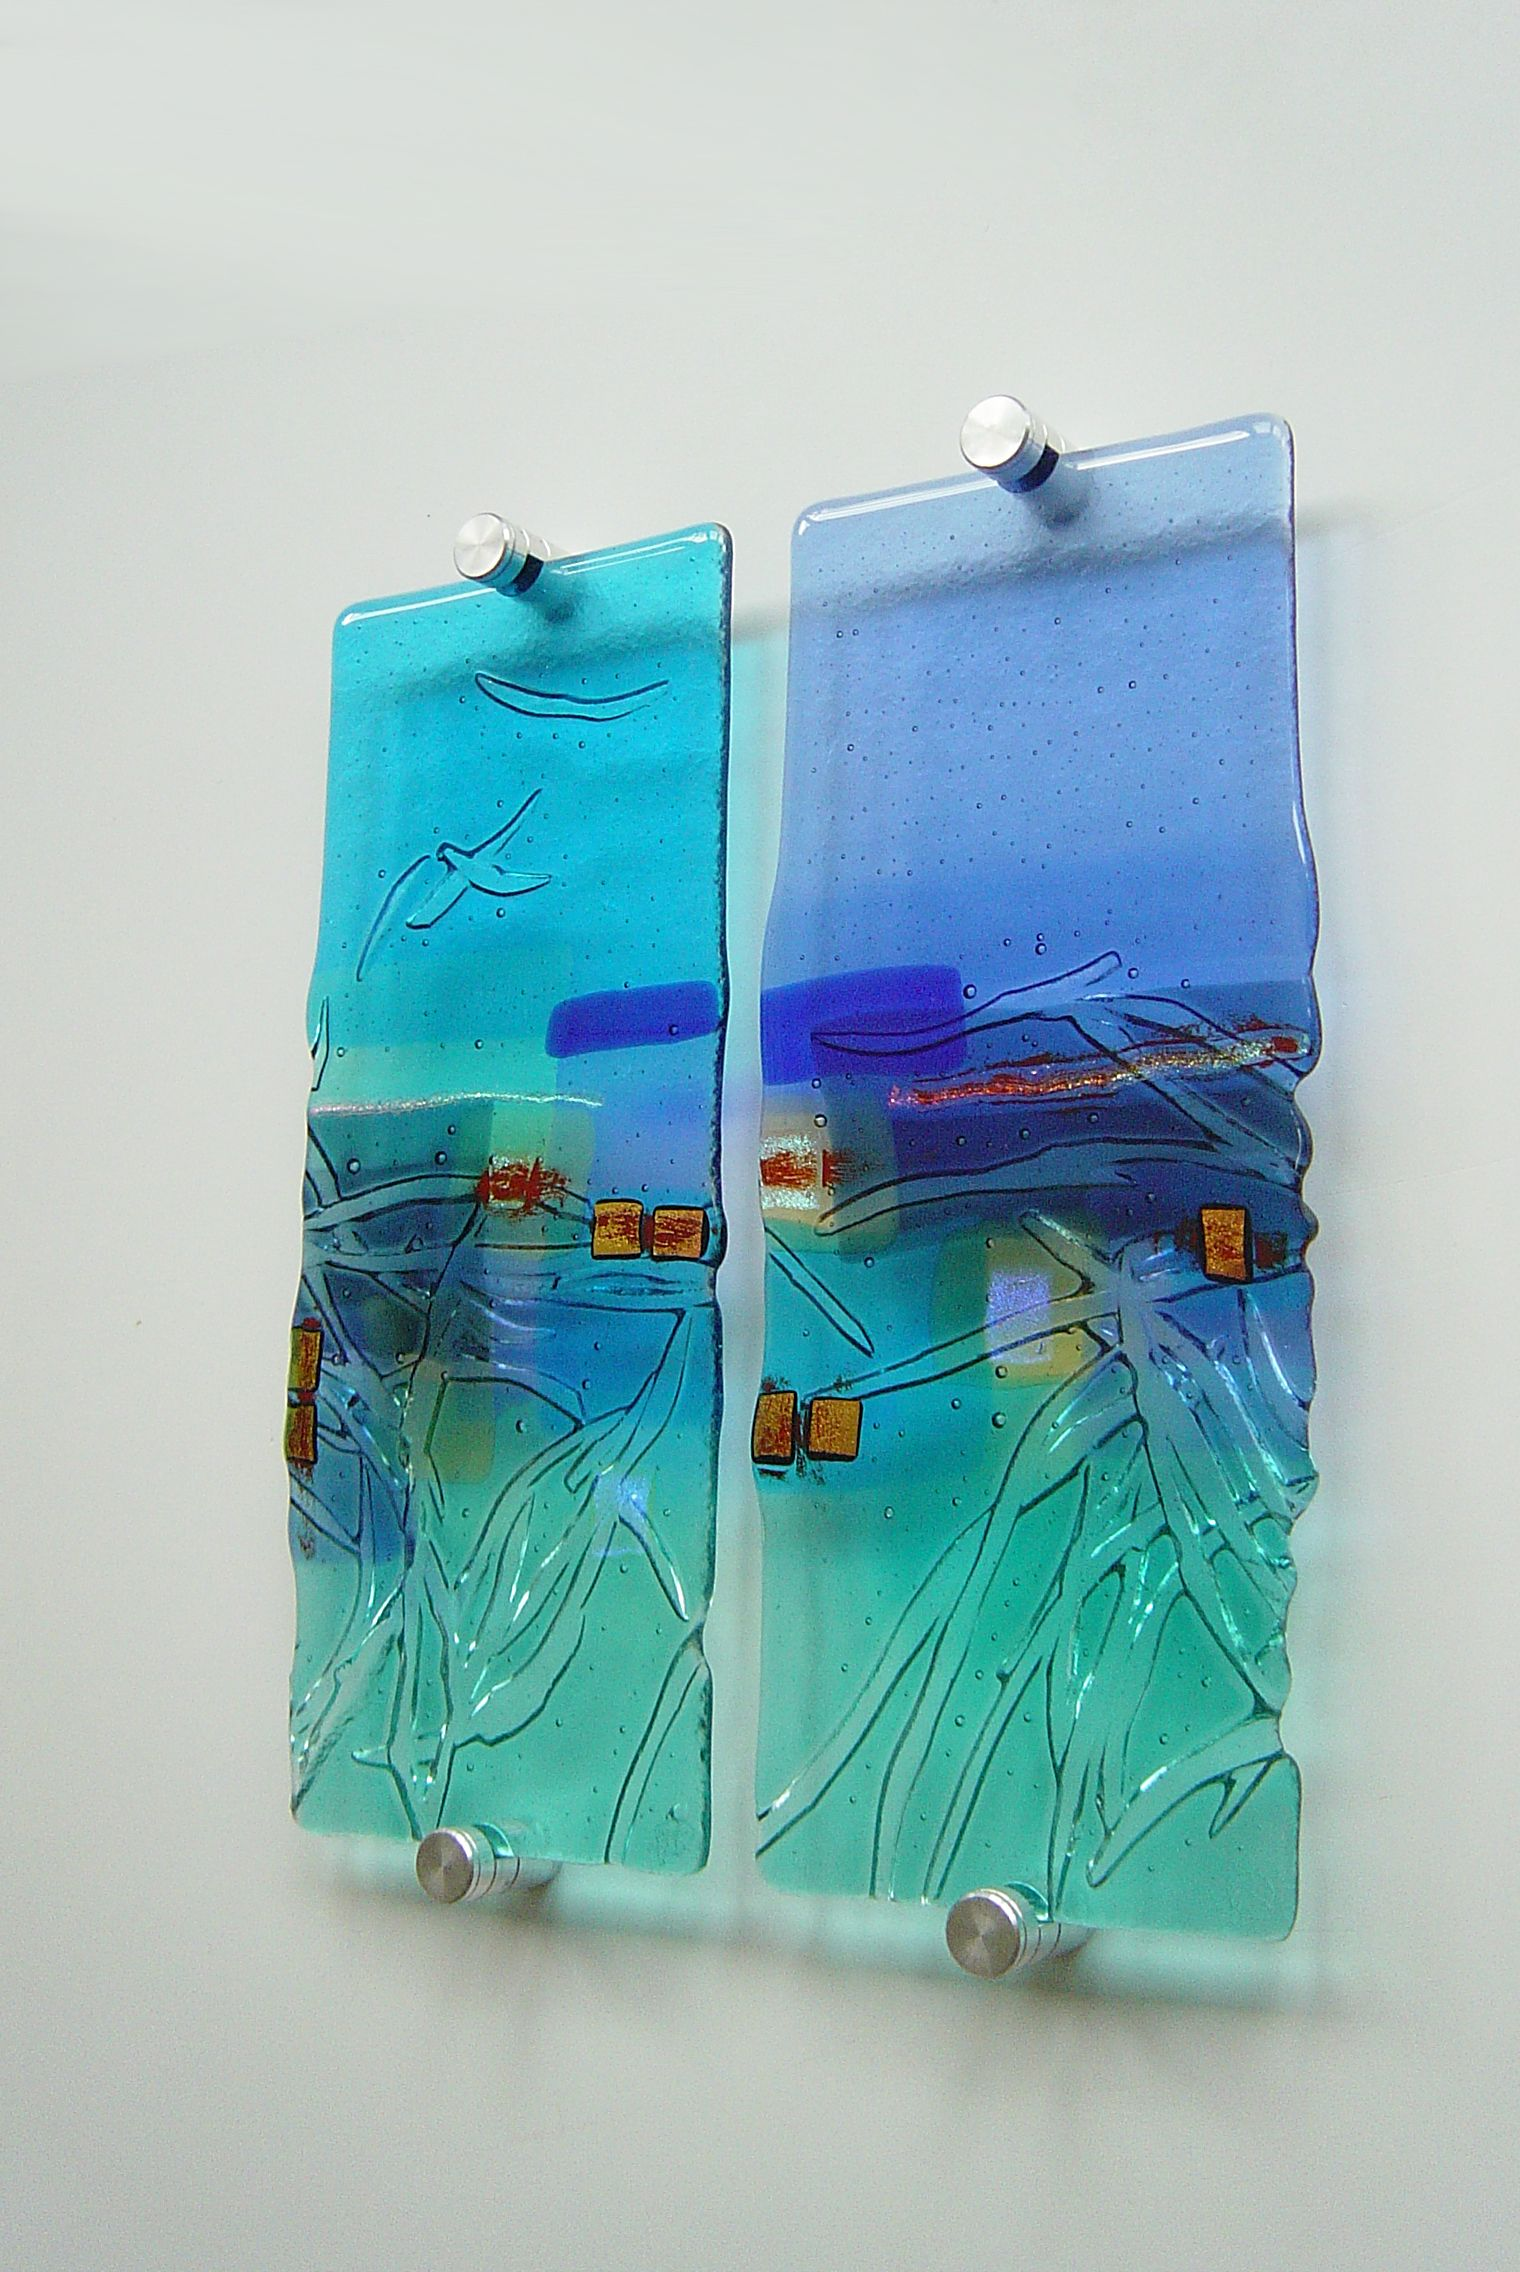 'Coastal Blue' Wall Panel Duo by Kim Bramley www.kimbramley.co.uk